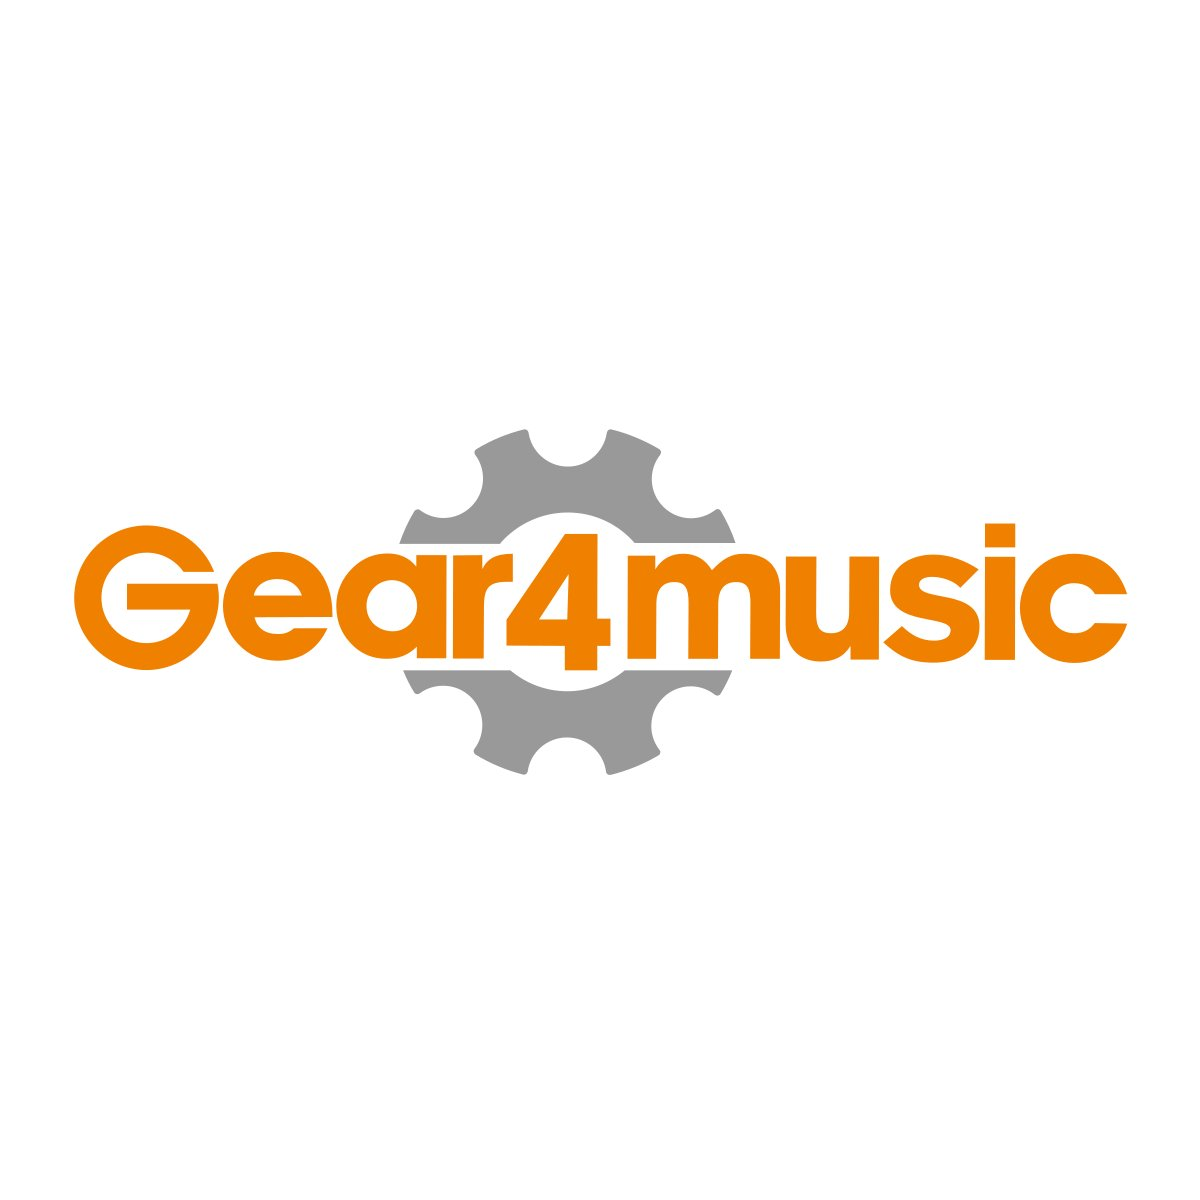 Luz de Pared LED de 252 x 10mm de Gear4music Gear4music